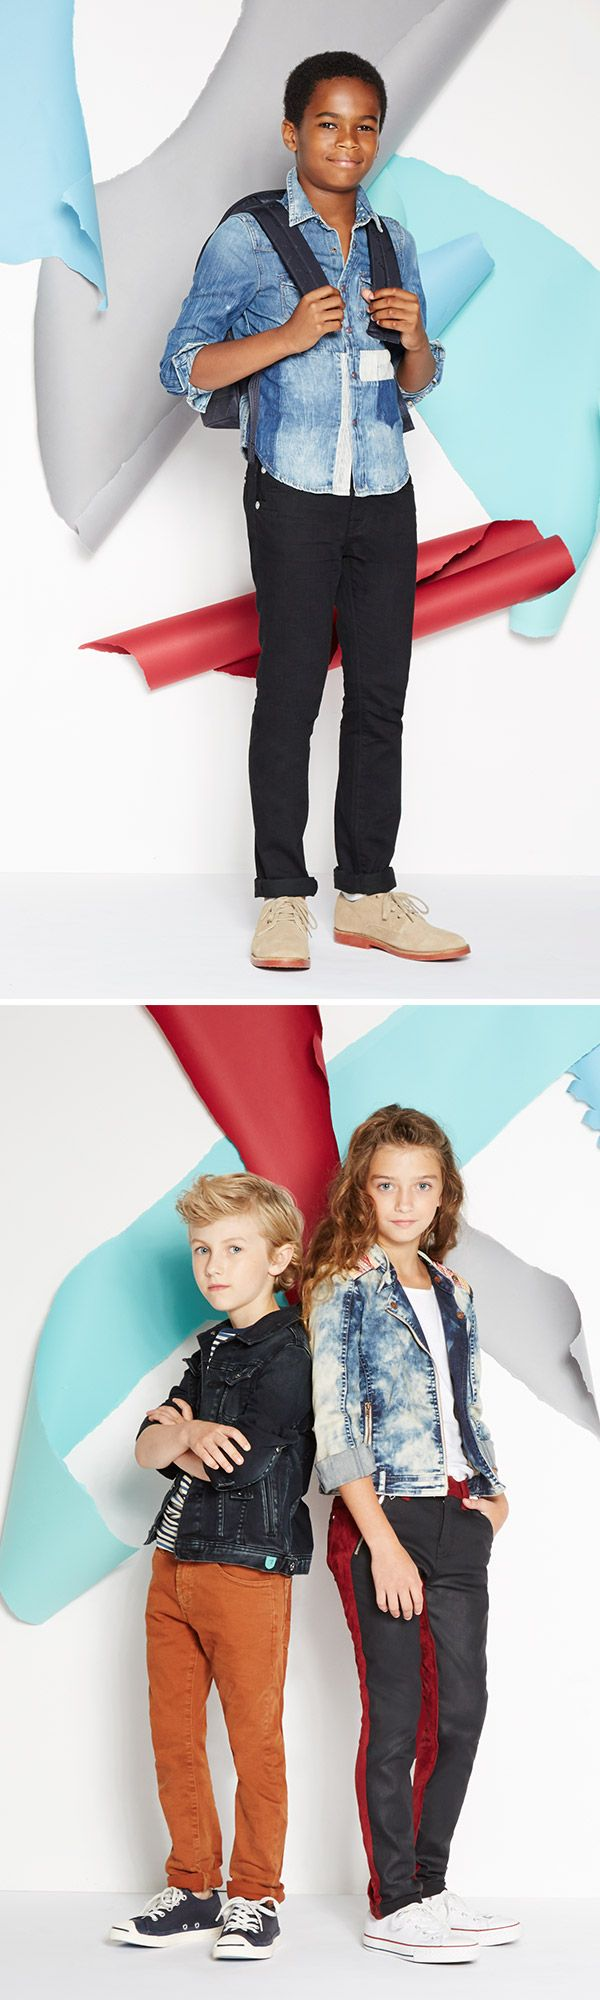 School the other kids with fabulous back-to-school style.